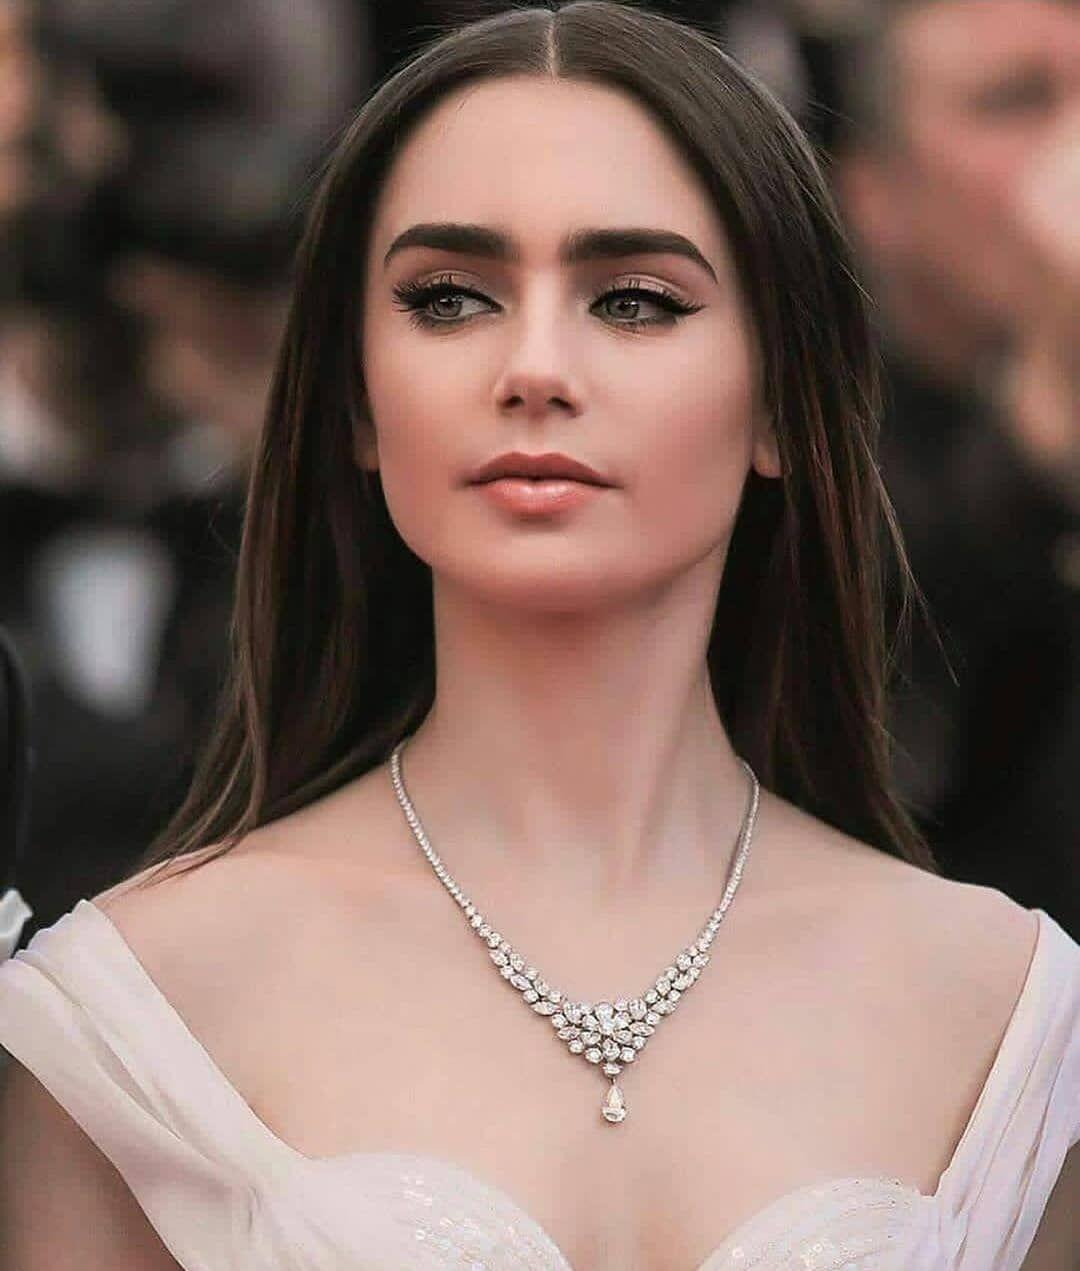 Lily Collins and Jack Gyllenhall at Cannes